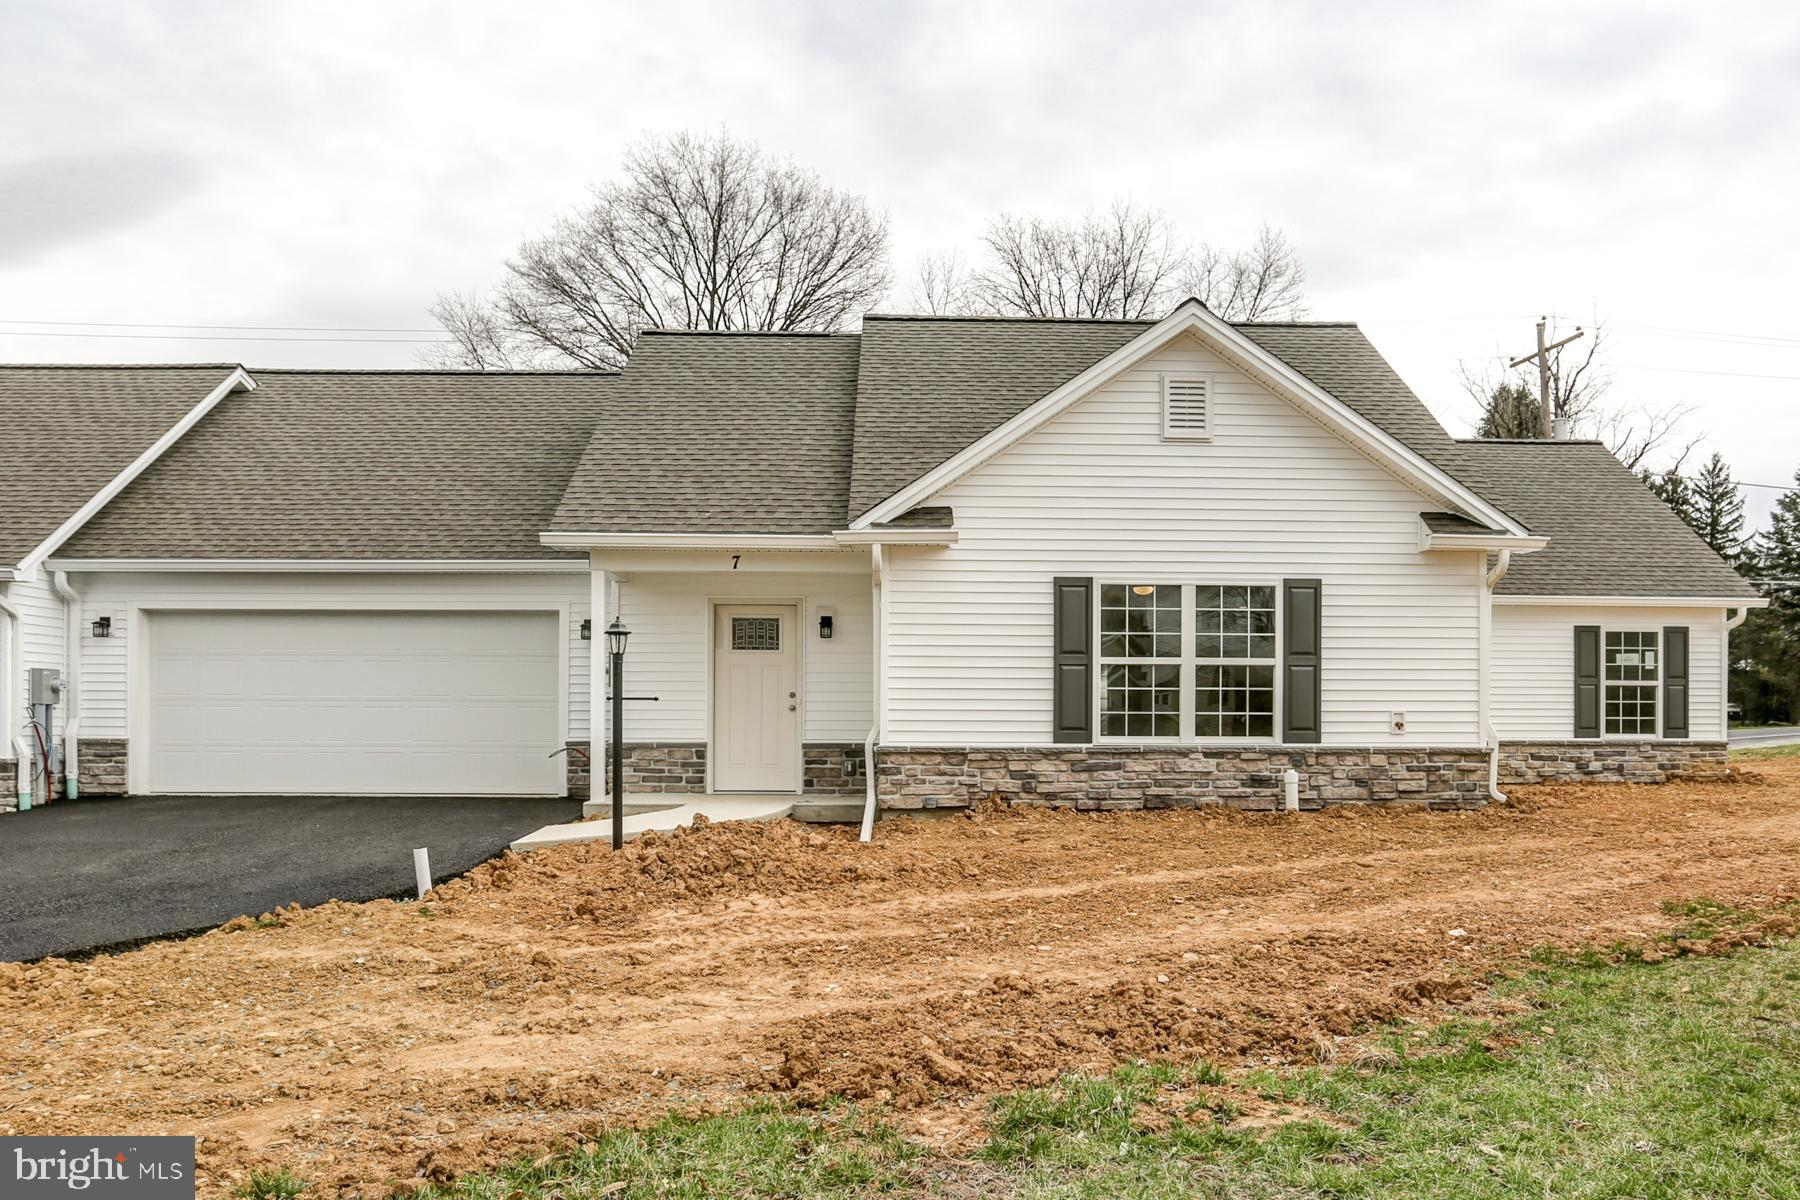 7 GROUP COURT, MOUNT HOLLY SPRINGS, PA 17065